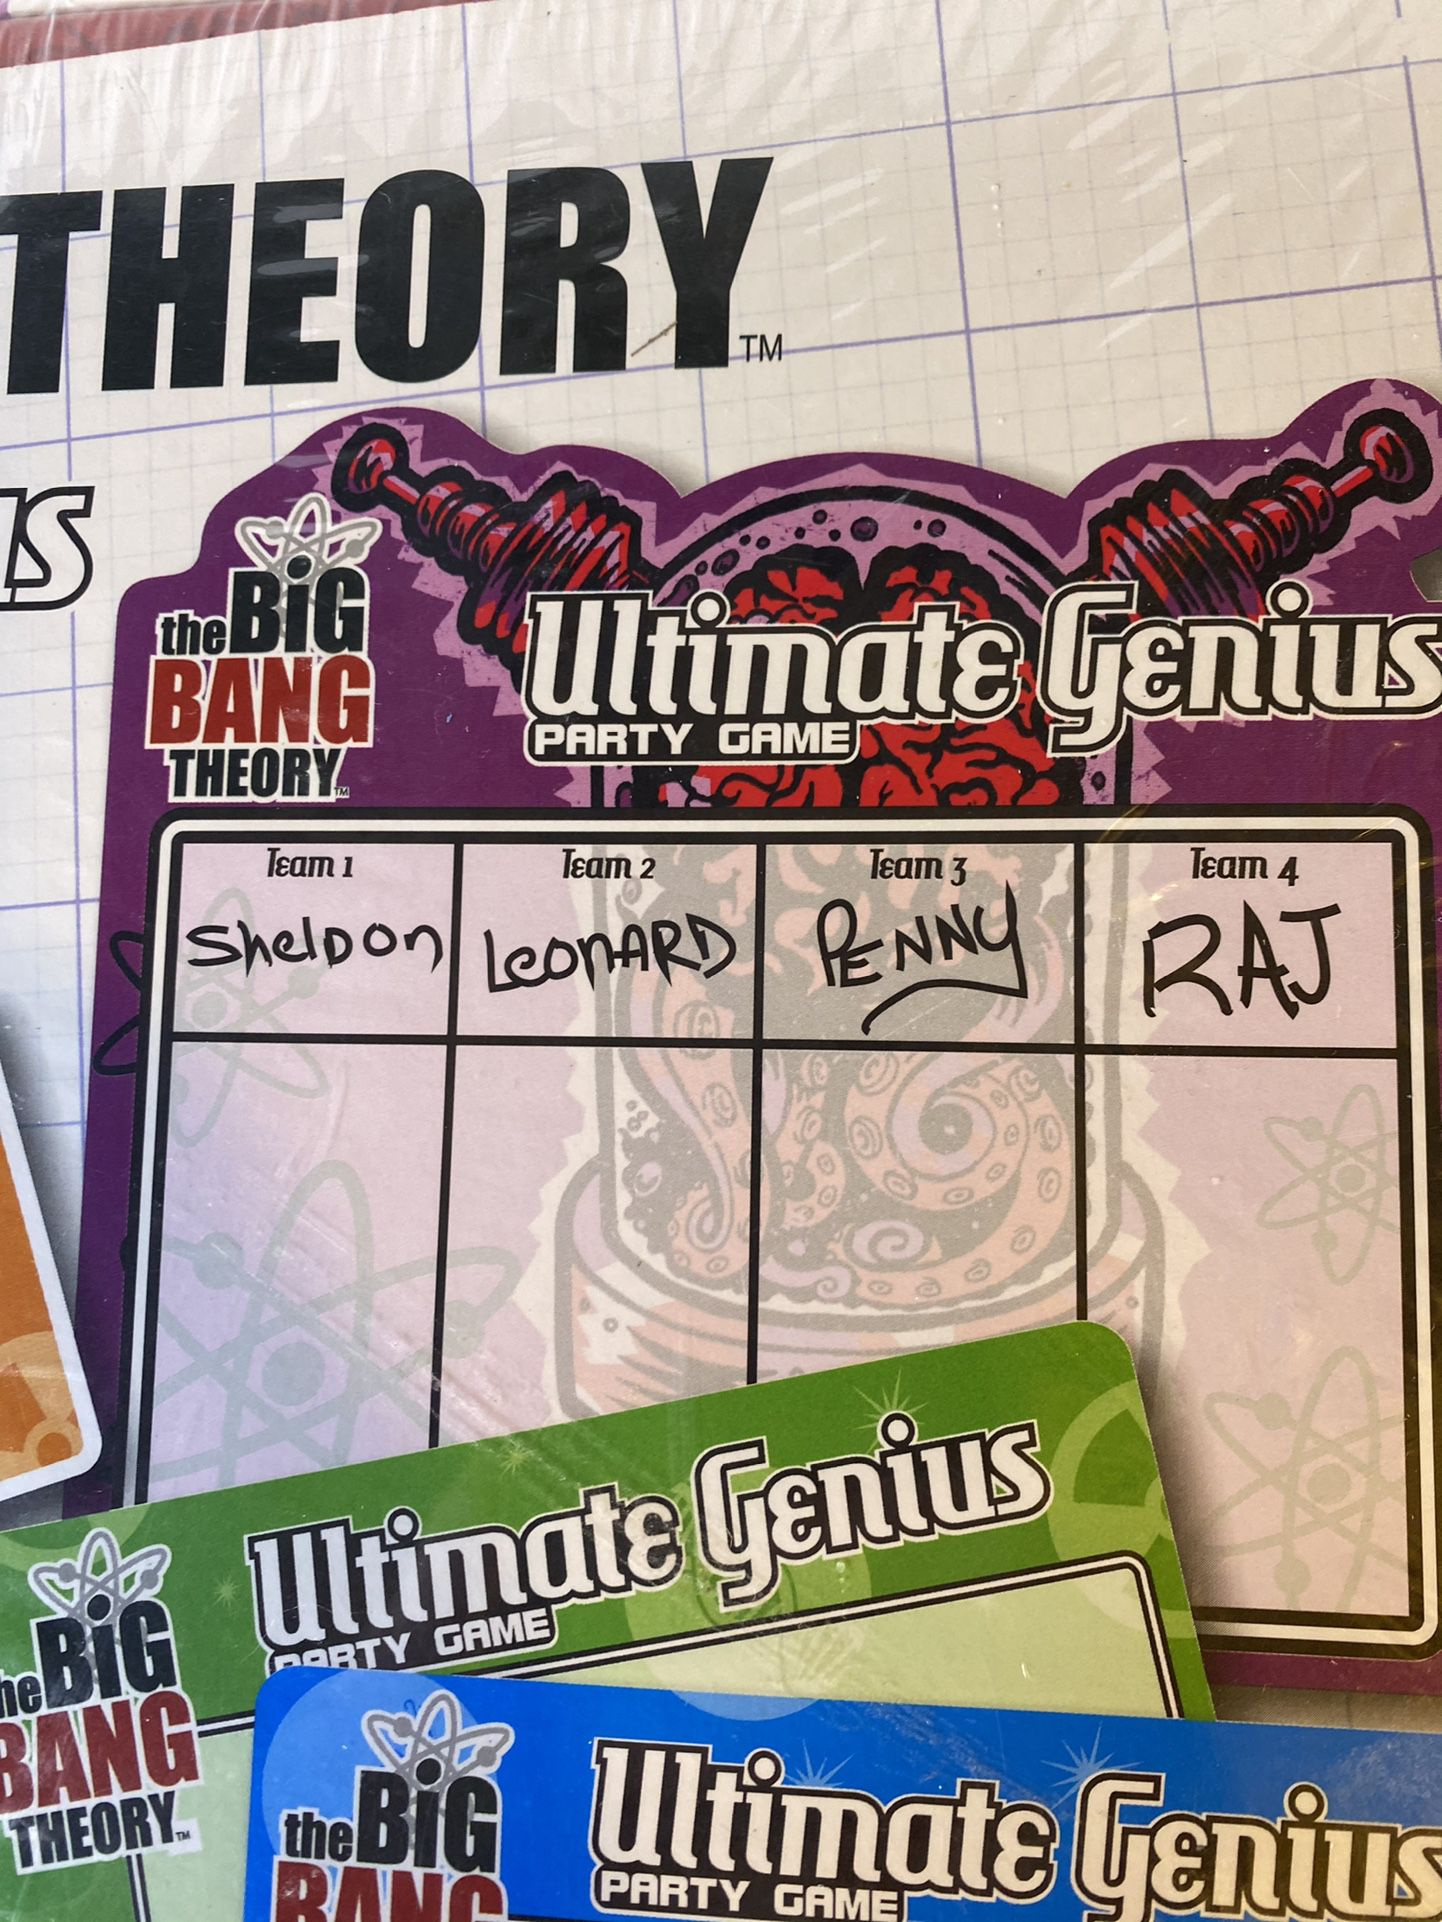 The Big Bang Theory Ultimate genius party Adult Board game Sealed